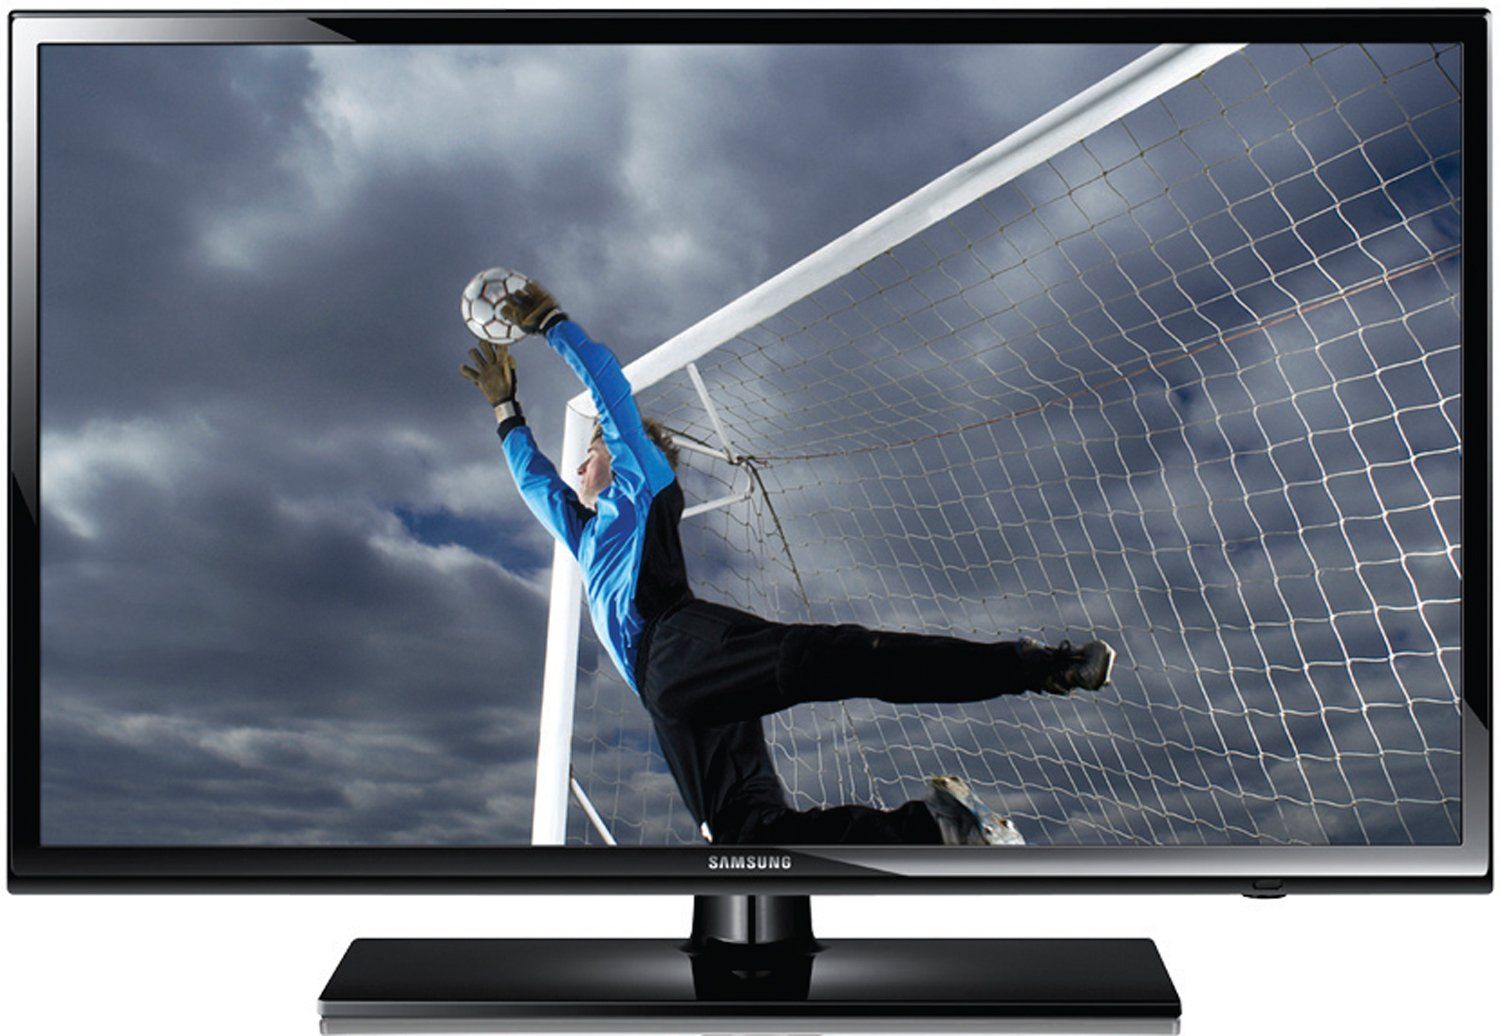 Samsung UN32EH4003 32-Inch 720p 60Hz LED TV